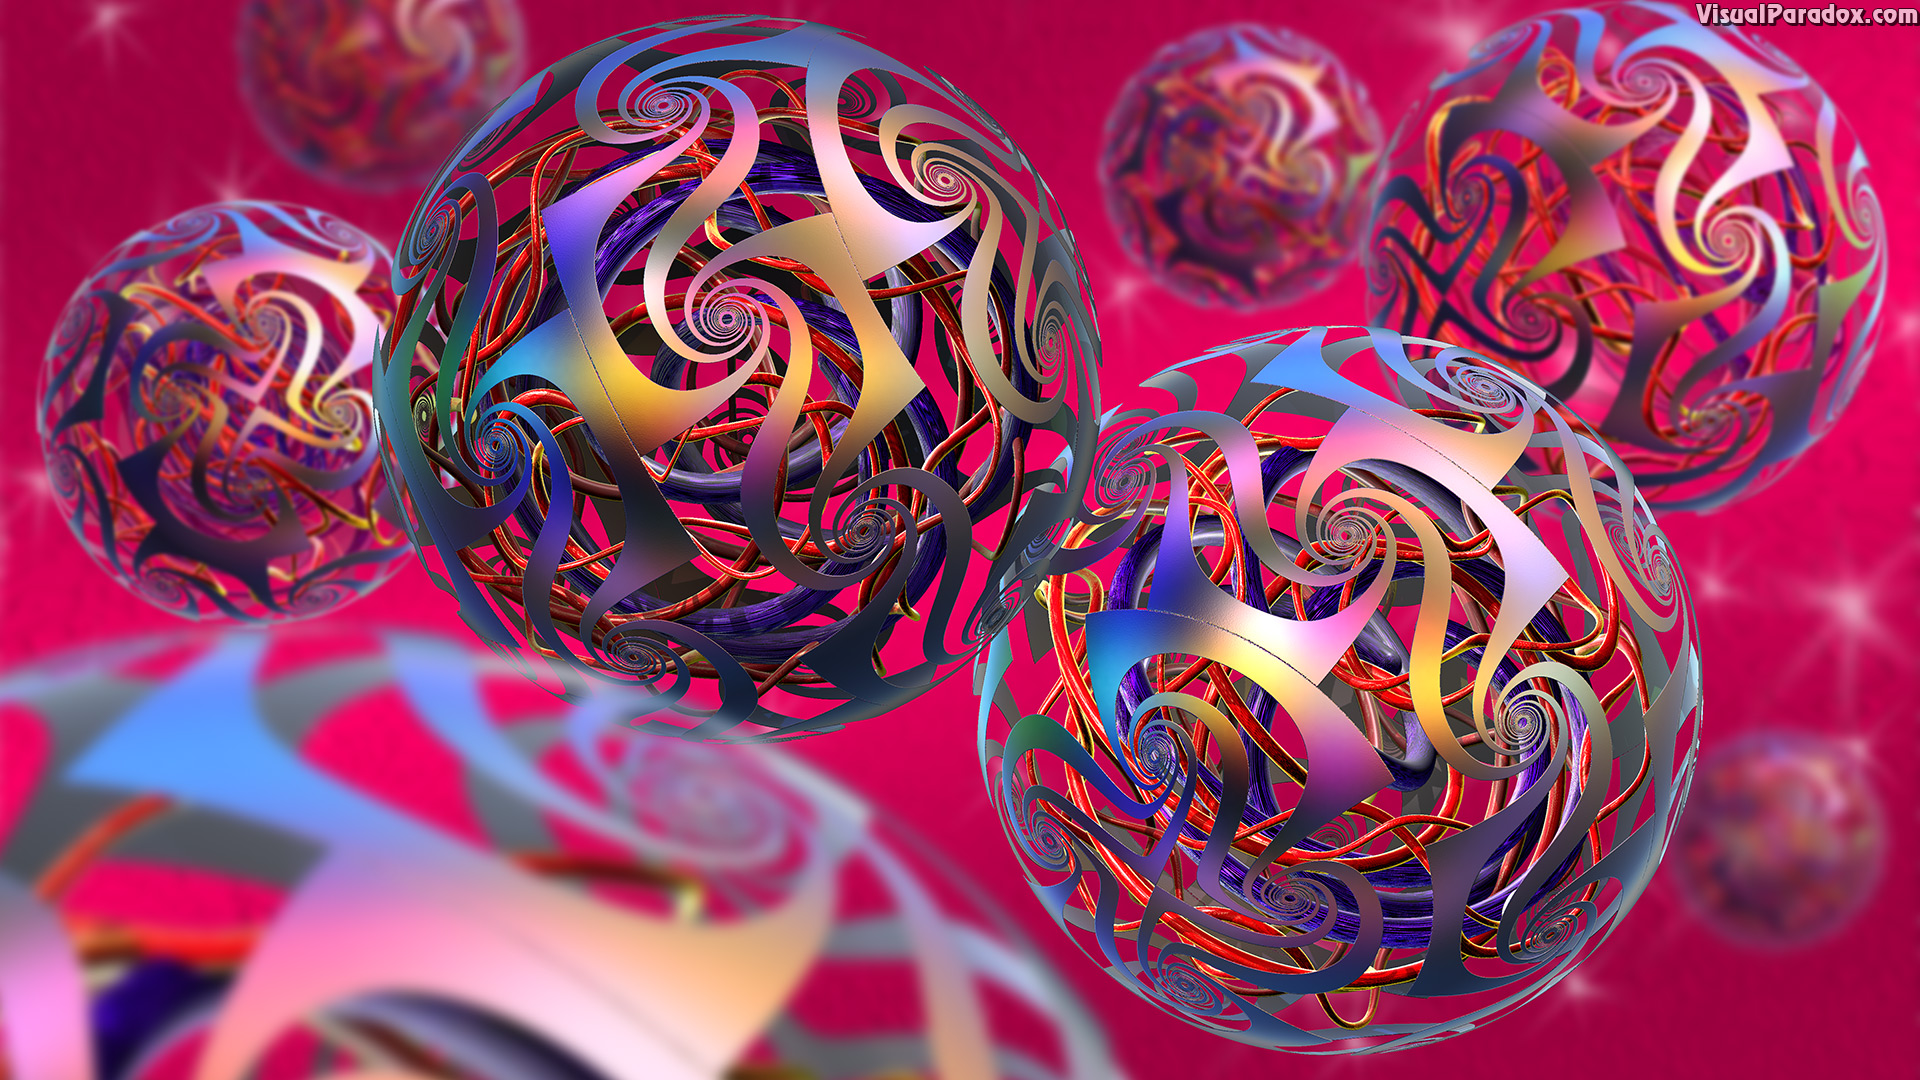 abstract, art, background, backgrounds, ball, beautiful, christmas, curled, curve, design, element, fractal, future, gold, graphic, helix, illustration, intricacy, lace, light, magic, mathematics, mystic, oracle, ornament, ornate, pattern, psychic, rainbow, round, scroll, shape, sphere, spiral, style, swirl, symbol, twist, twisted, vector, 3d, wallpaper